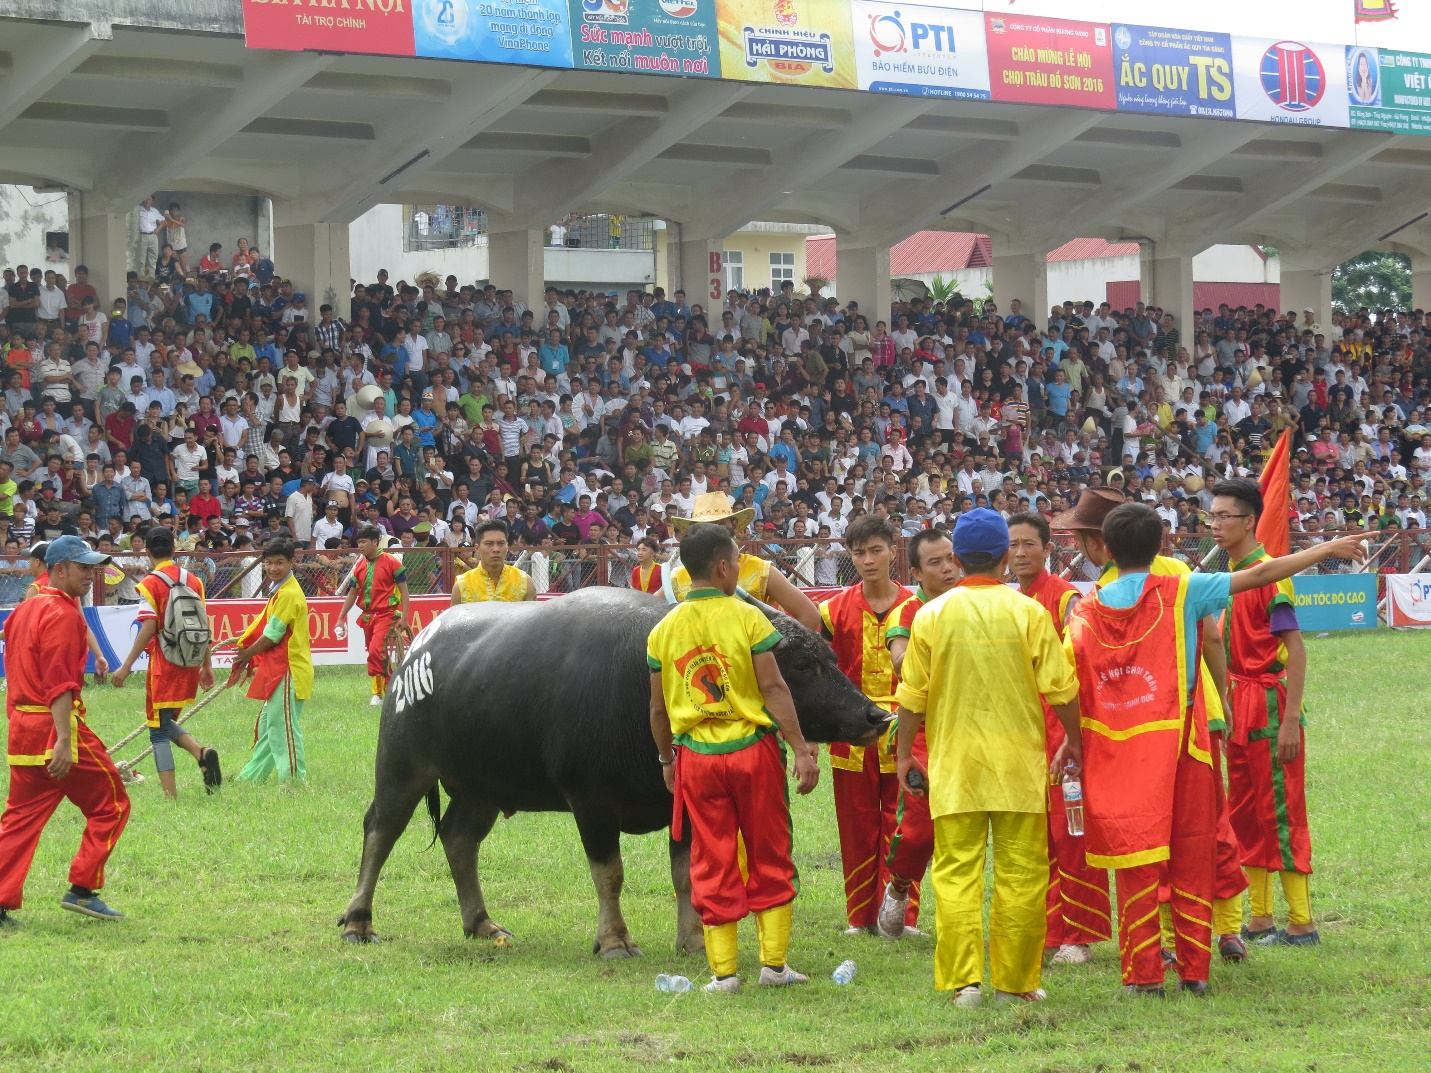 The buffalo appeared in the cheer of the spectators